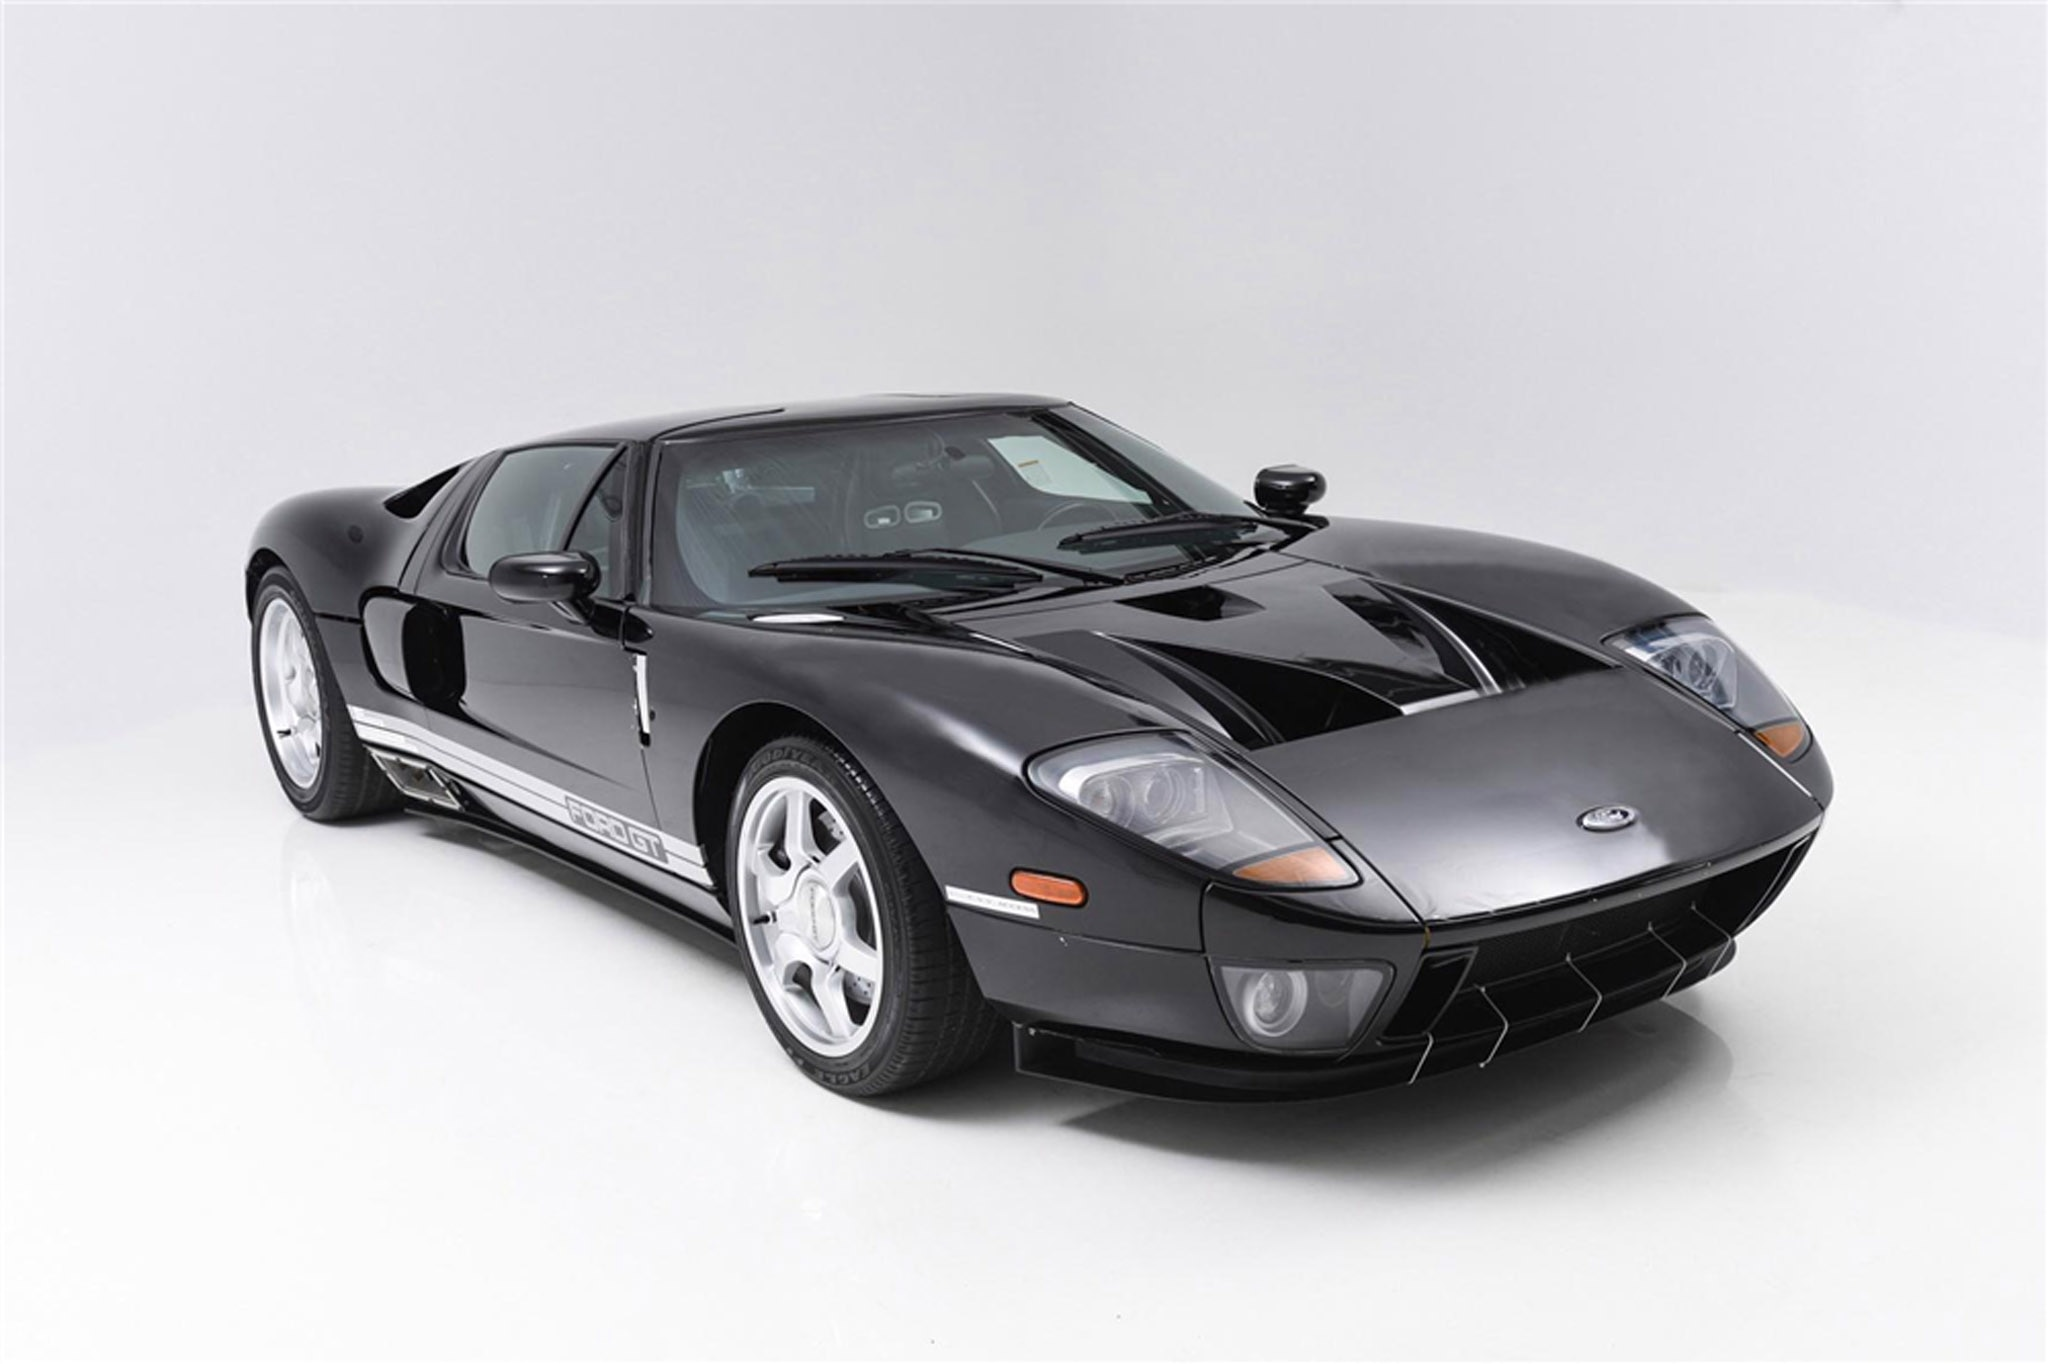 2004 FORD GT PROTOTYPE CP 1 VIN 004 Front